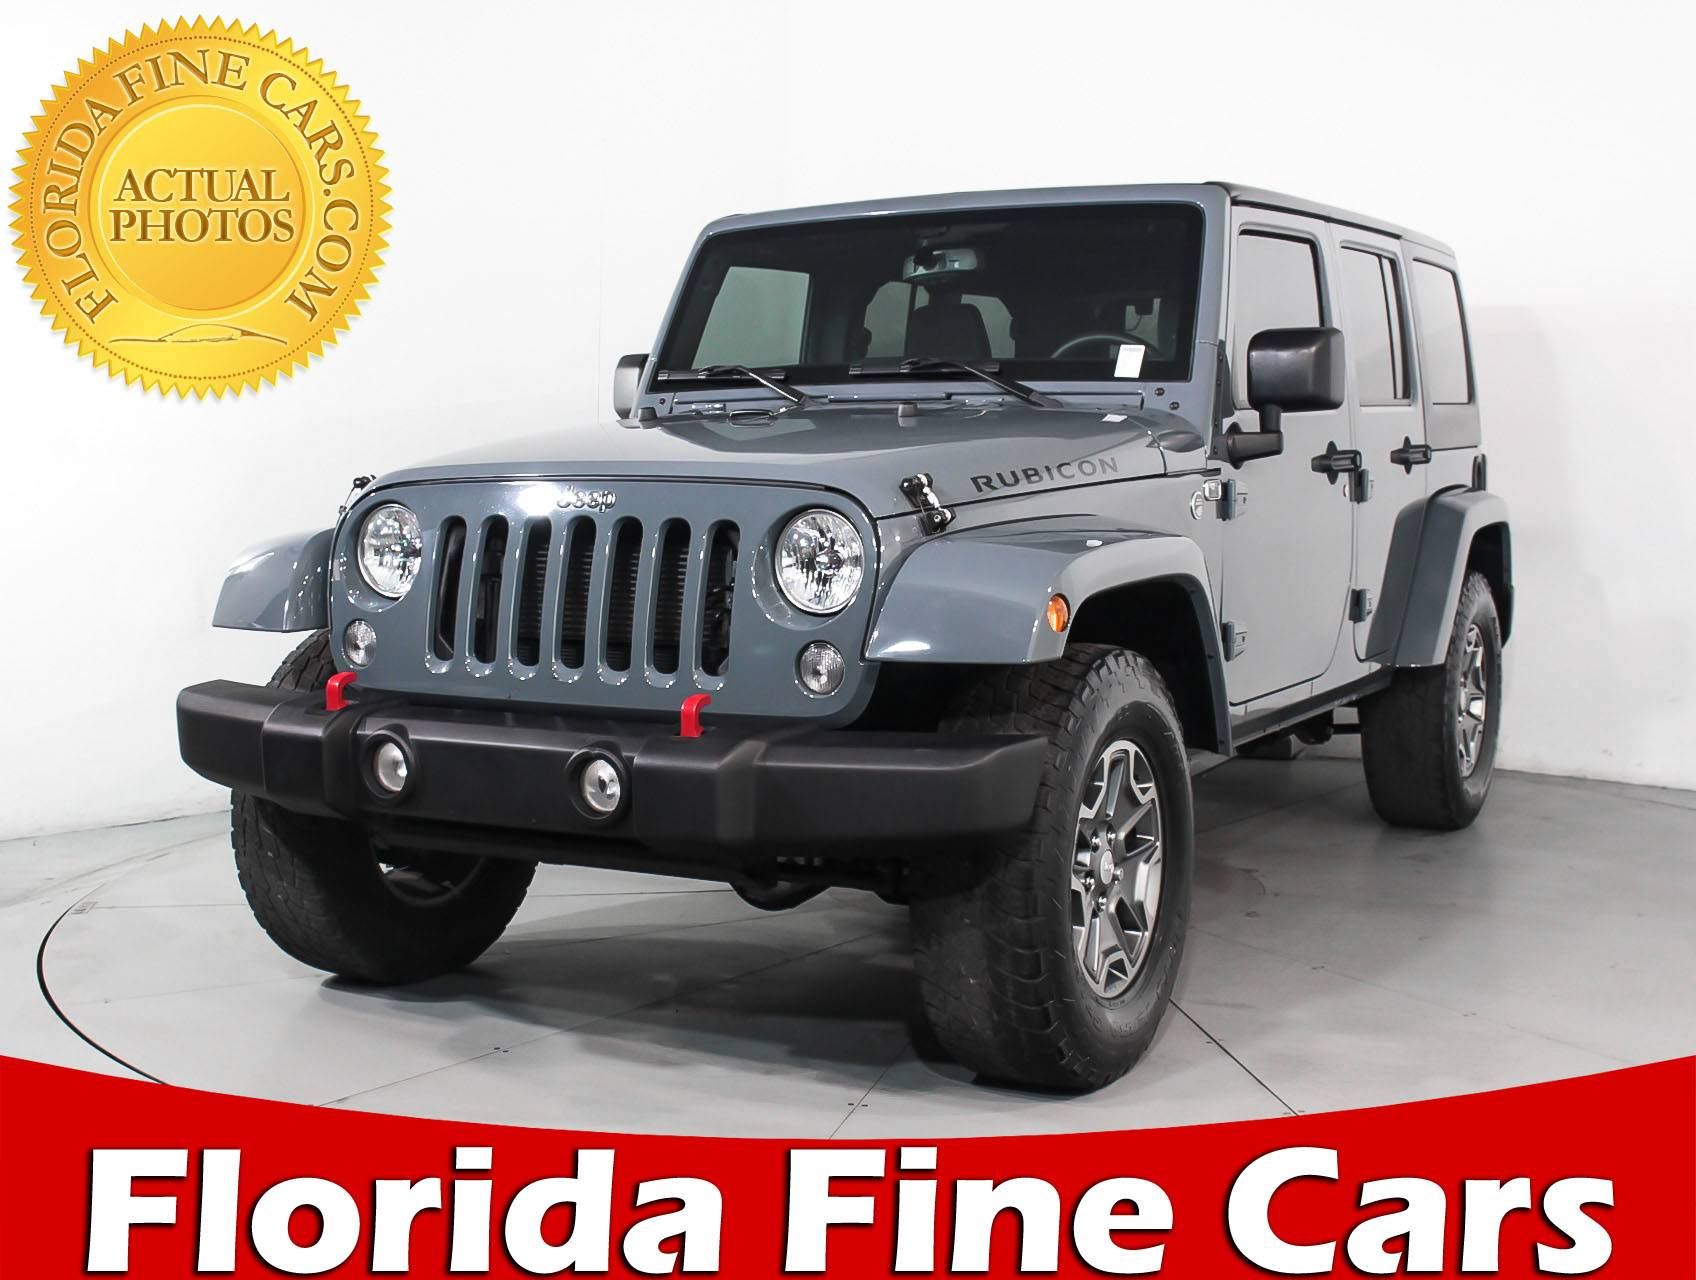 Used 2015 JEEP WRANGLER UNLIMITED RUBICON SUV for sale in MIAMI FL